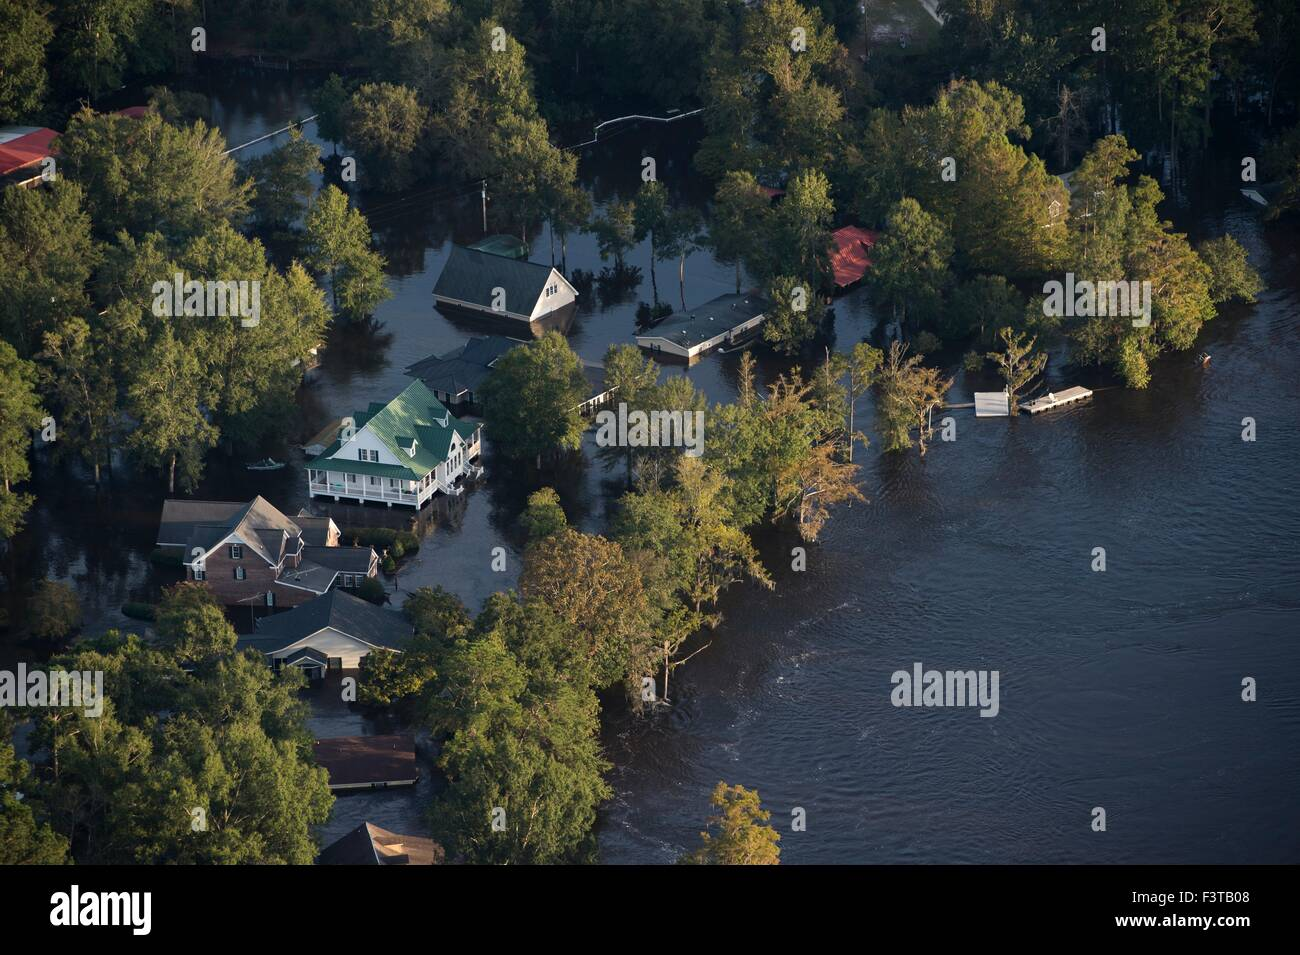 Aerial view of homes submerged in floodwaters after record breaking storms dumped more than two feet of rain October 9, 2015 in Andrews, South Carolina. At least 17 people have died from the floods that effected most of South Carolina. Stock Photo